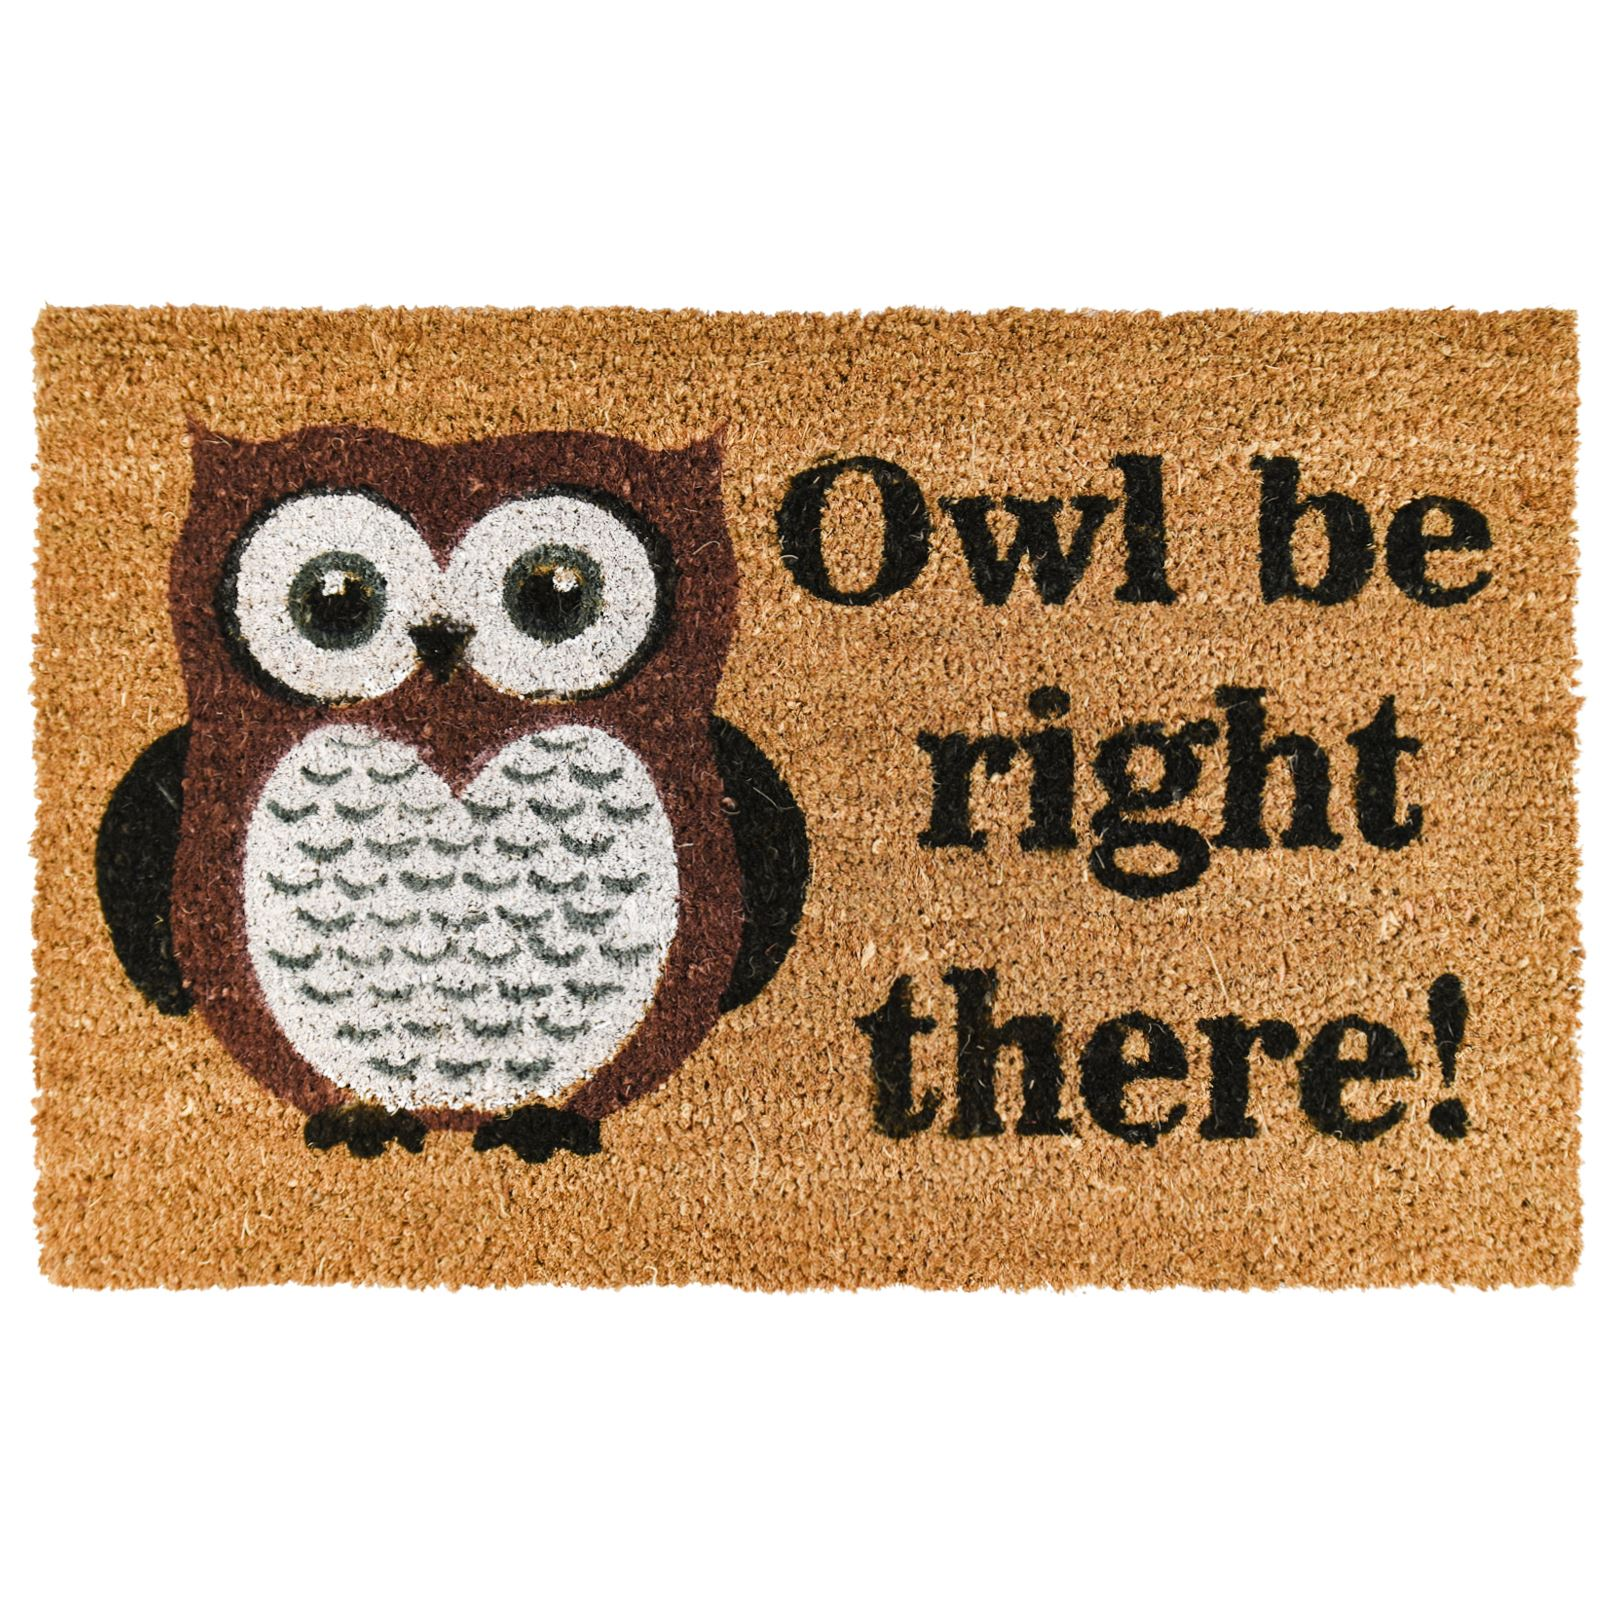 Novelty non slip door mat tough natural coir pvc back welcome doormat 45 x 75cm ebay - Novelty welcome mats ...